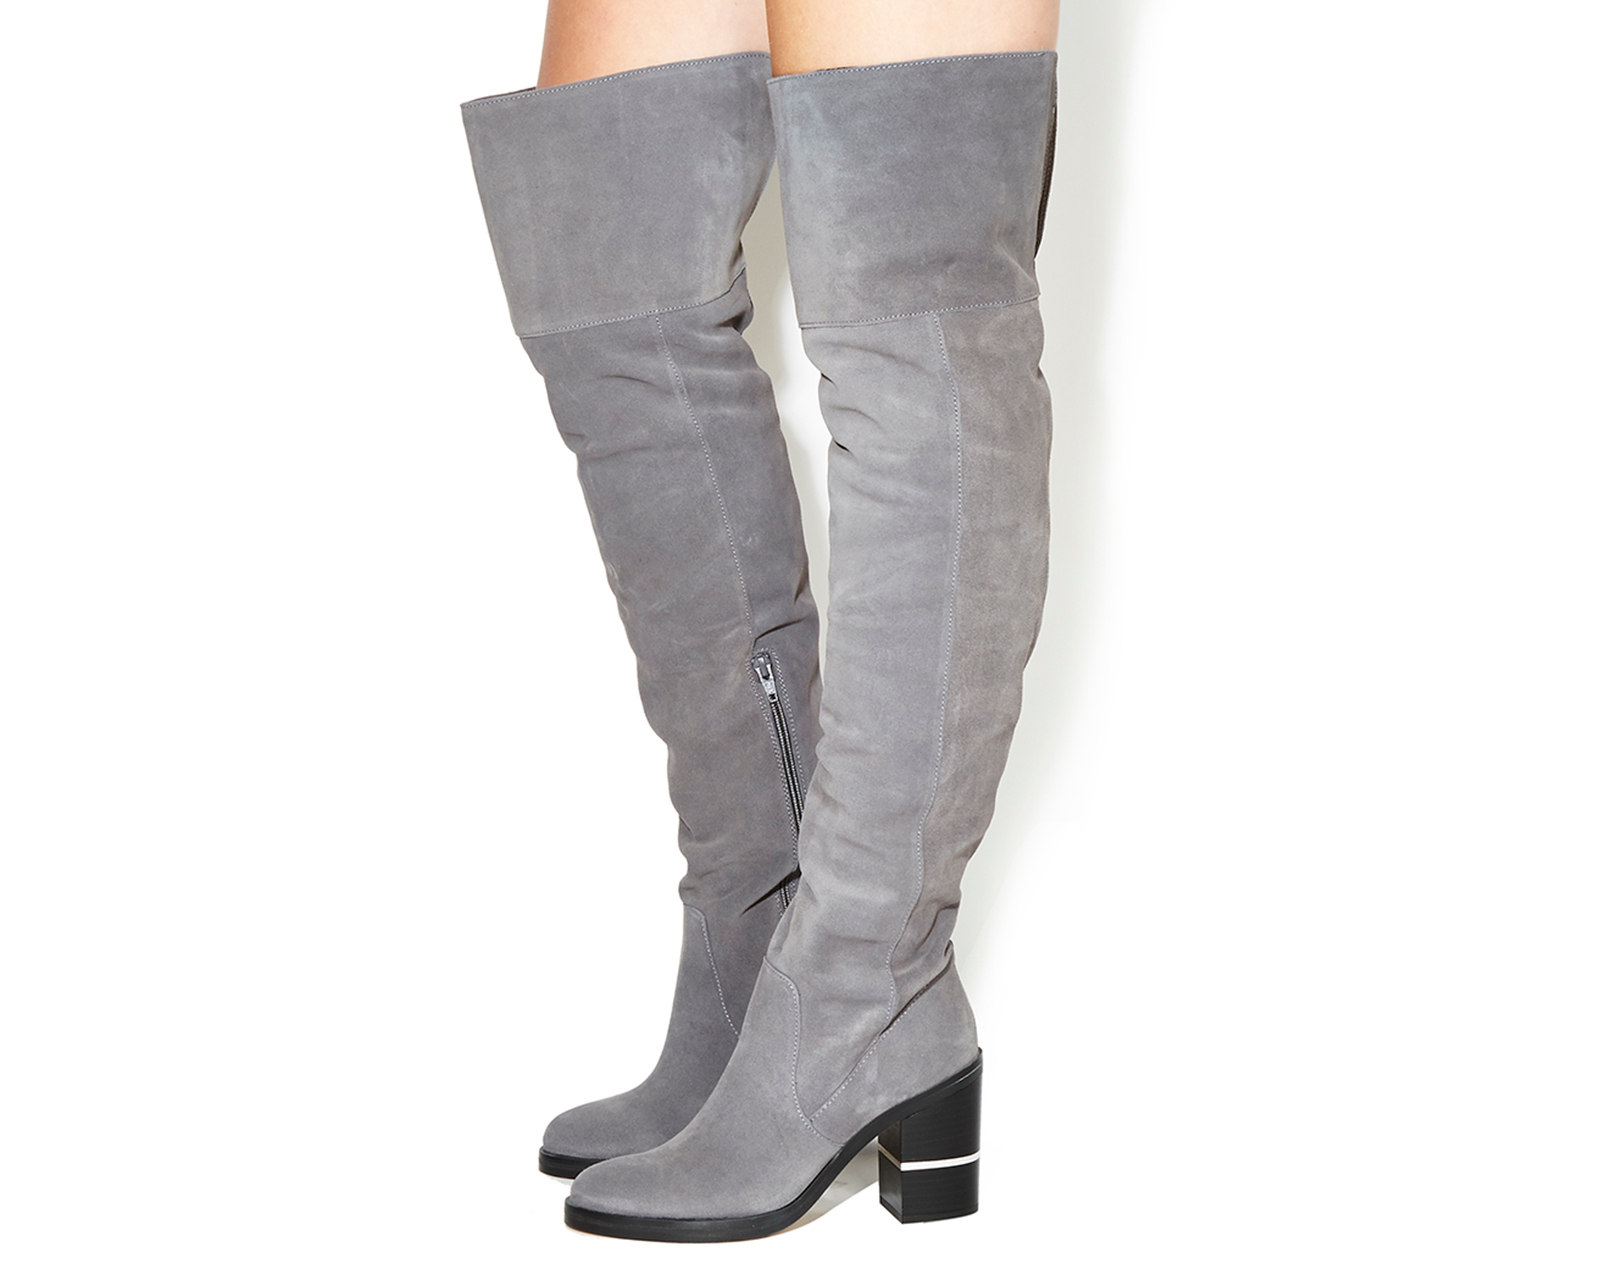 Sentinel Womens Office Elemental Over The Knee Boots Grey Suede Ex Display